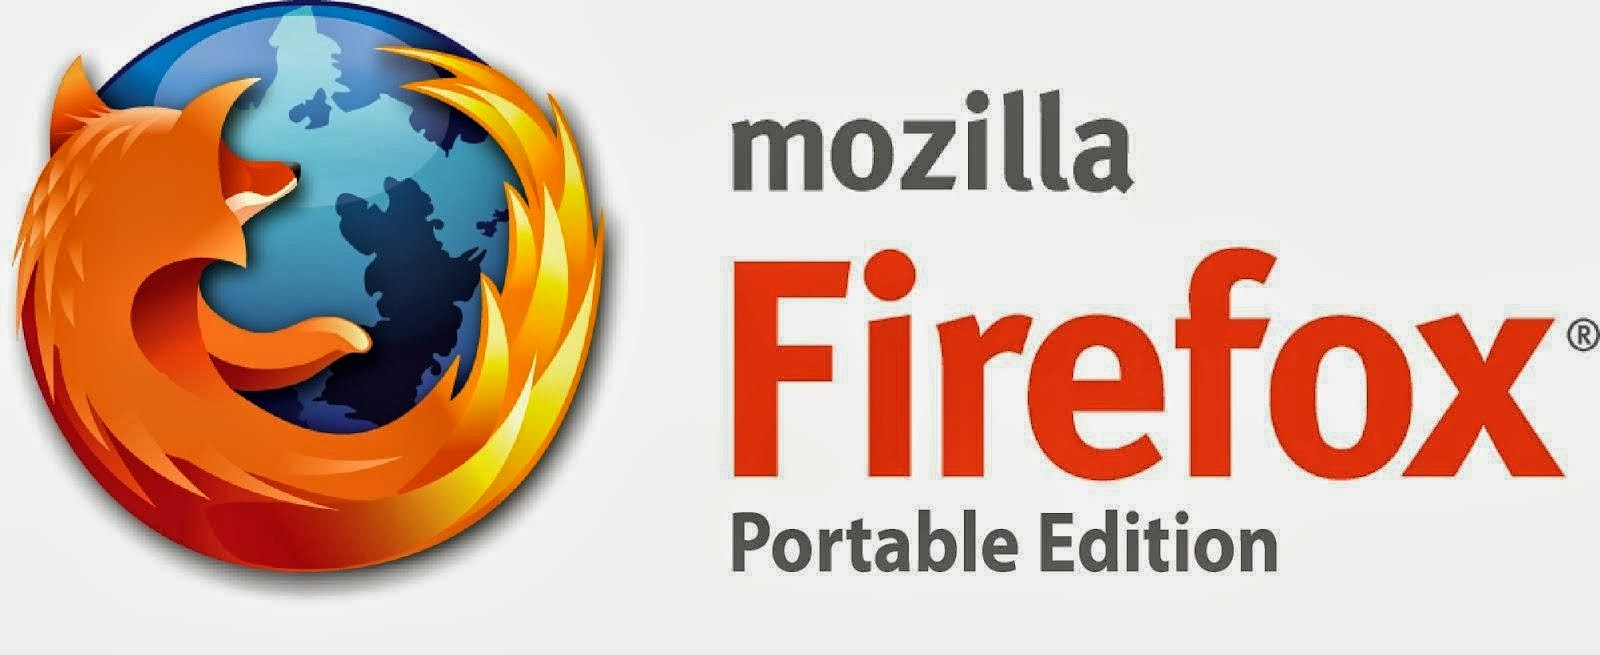 Portable software for USB portable and cloud drives